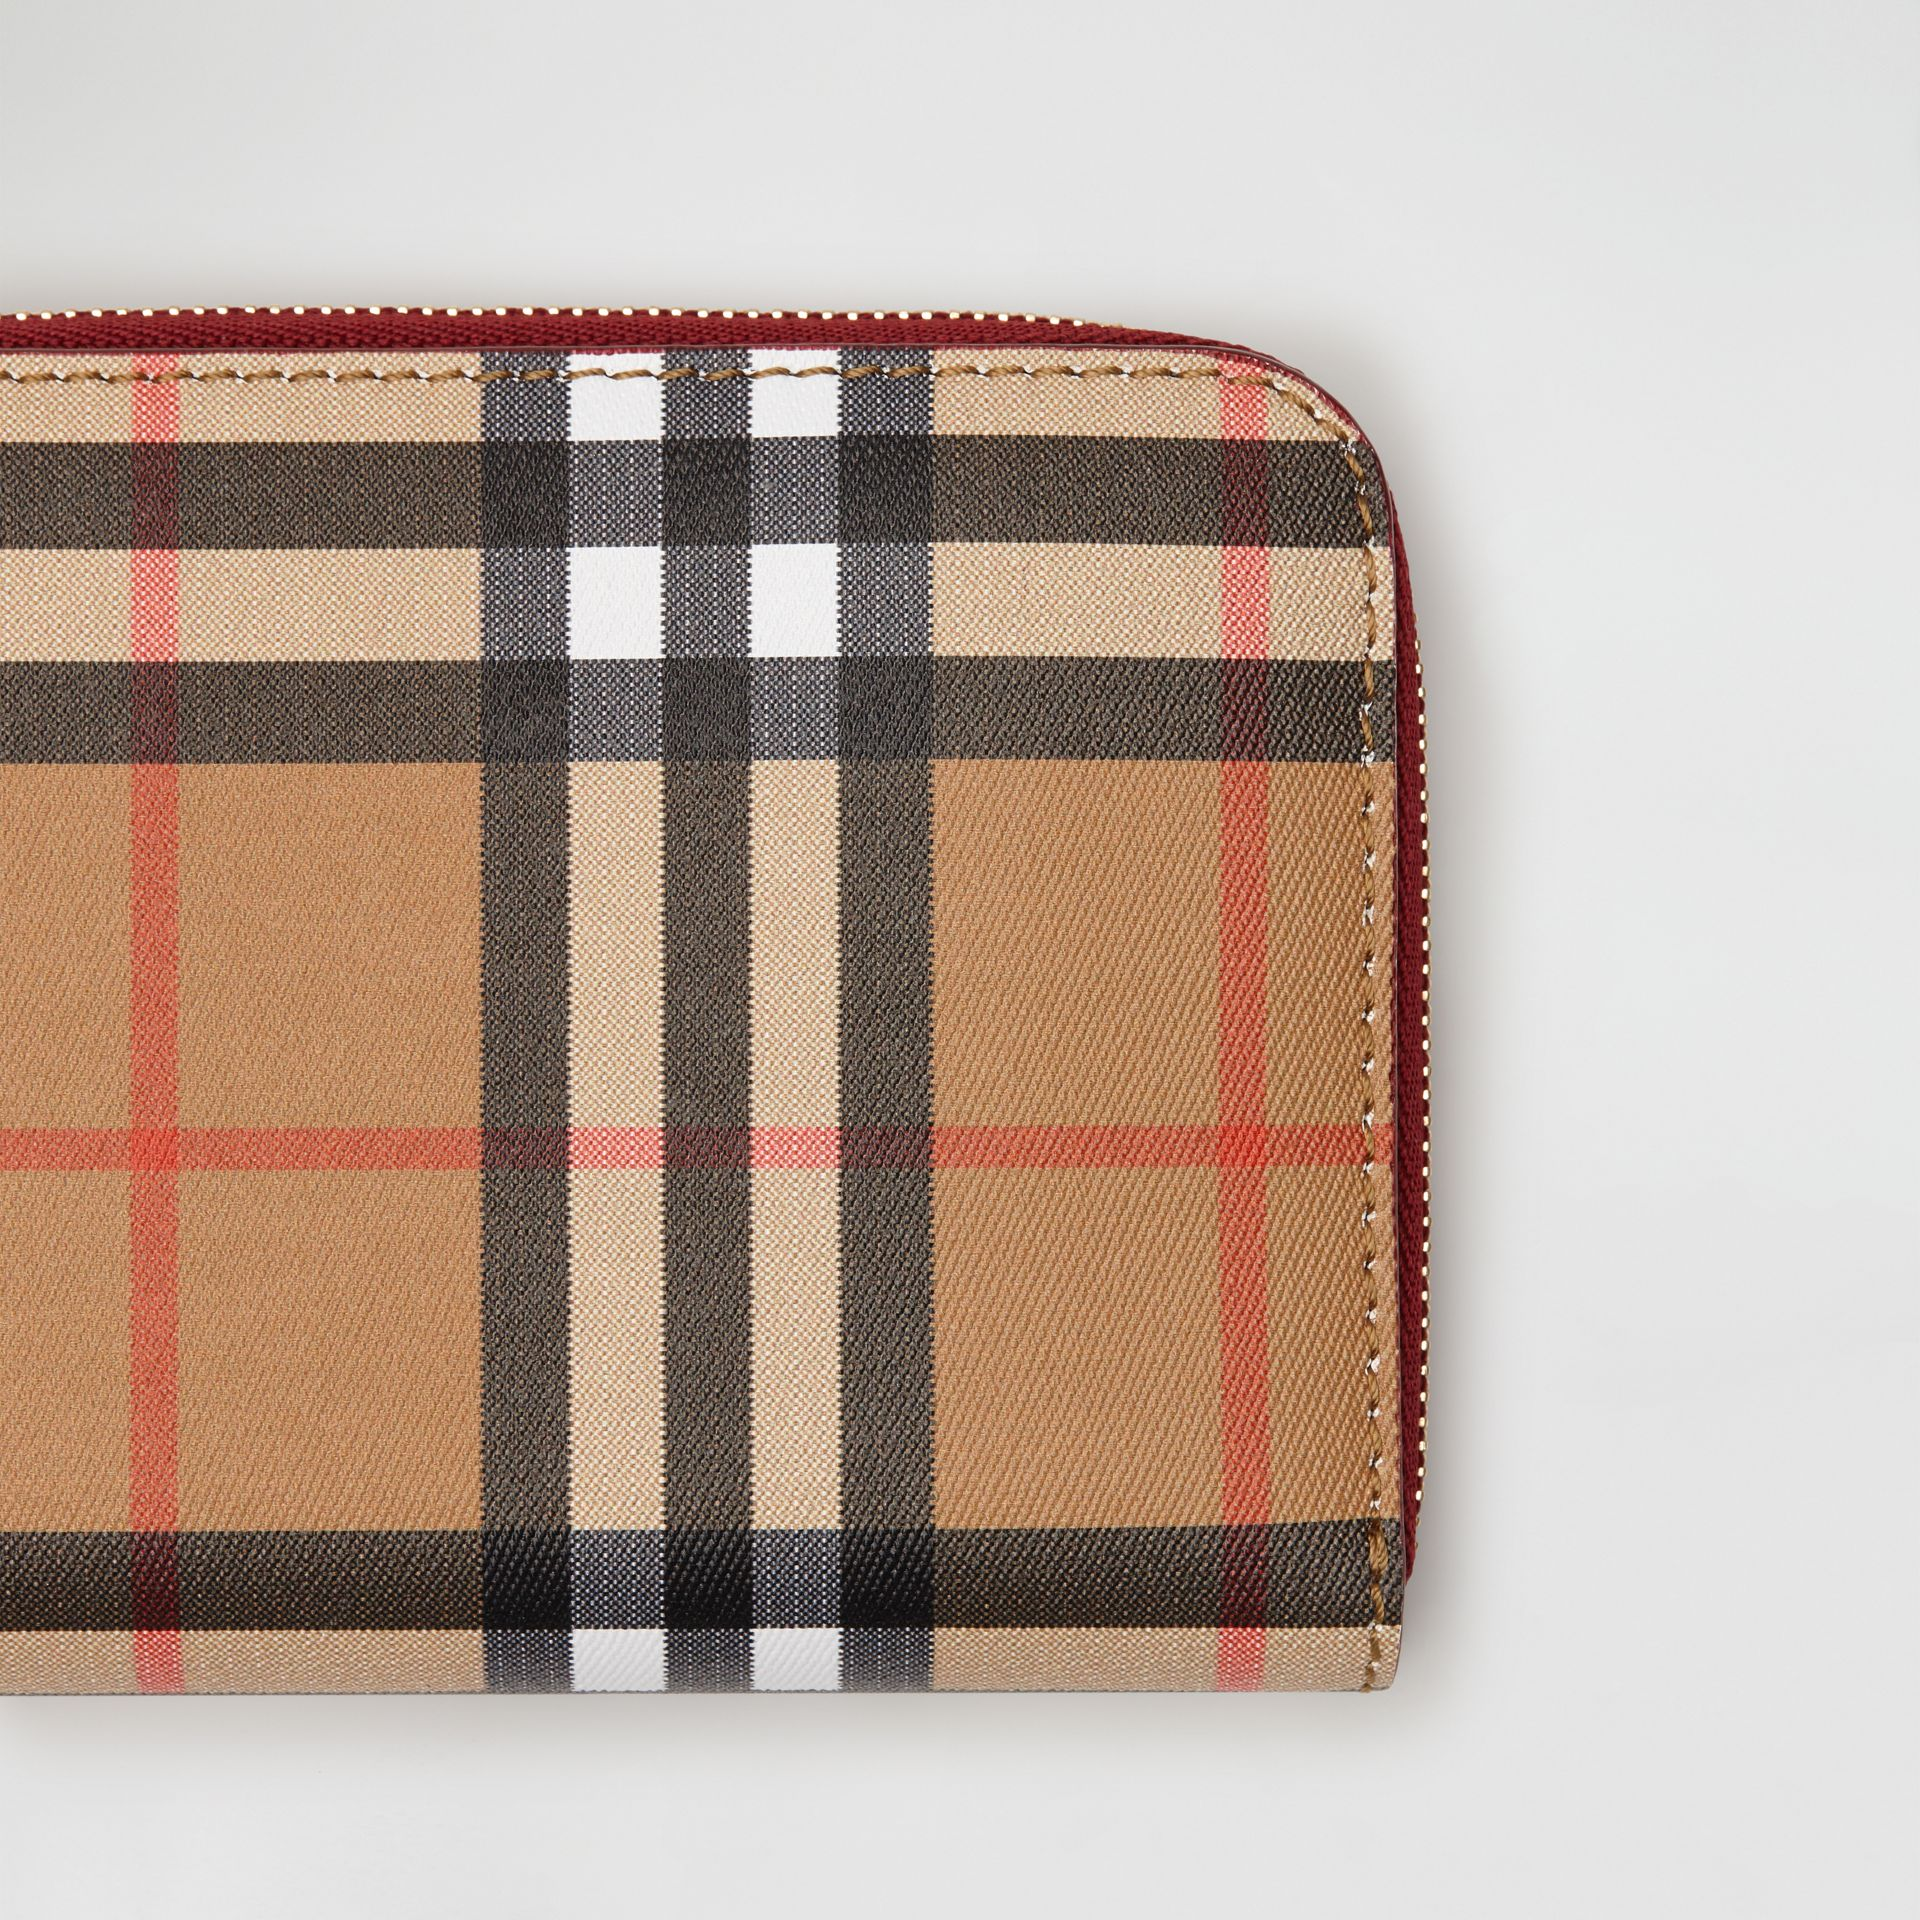 Vintage Check and Leather Ziparound Wallet in Crimson - Women | Burberry Hong Kong - gallery image 1